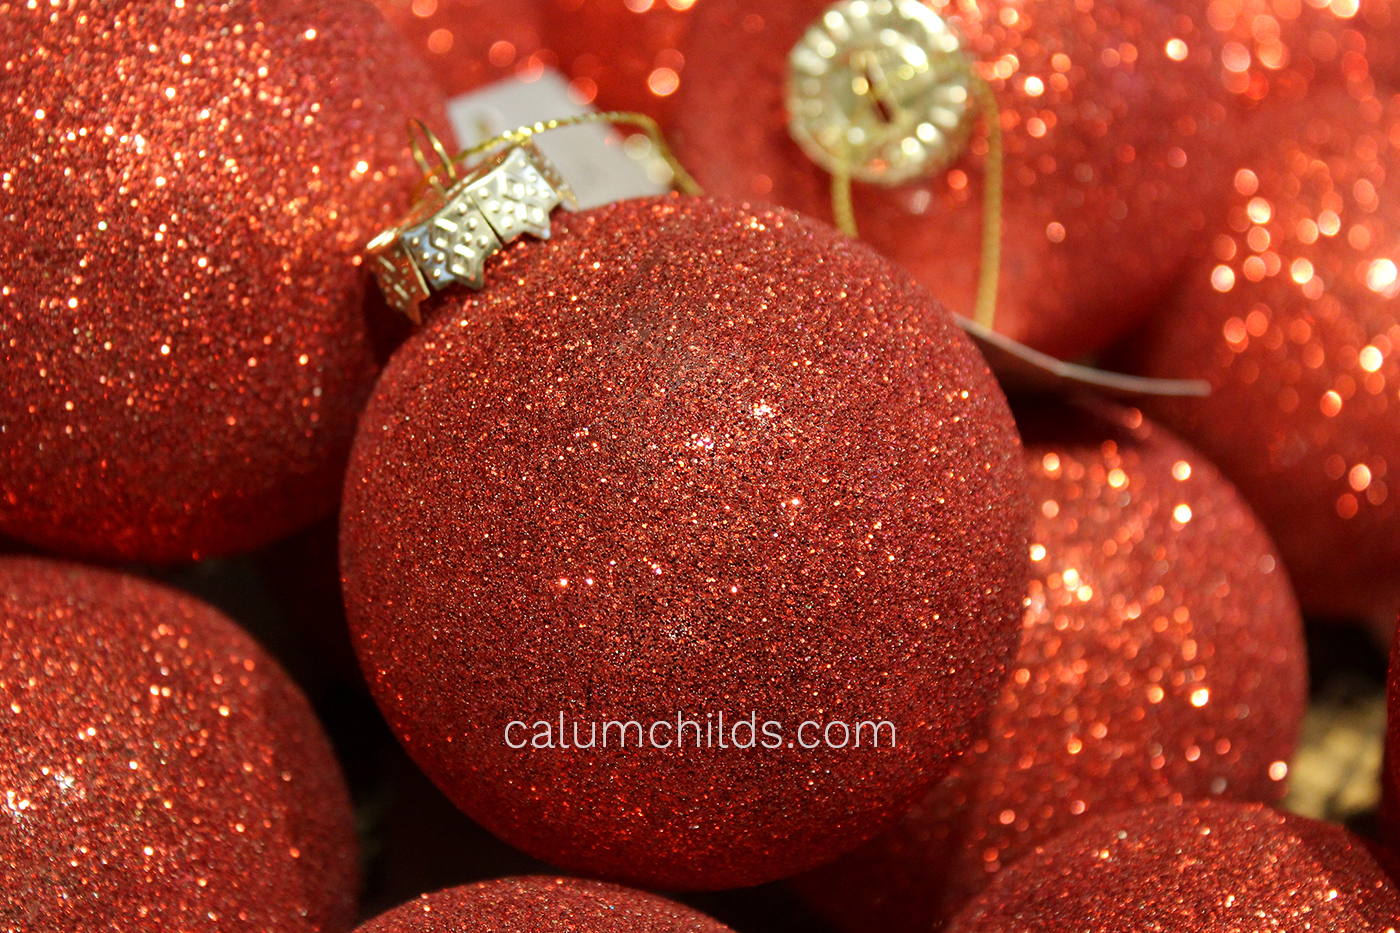 A bauble covered in red glitter.